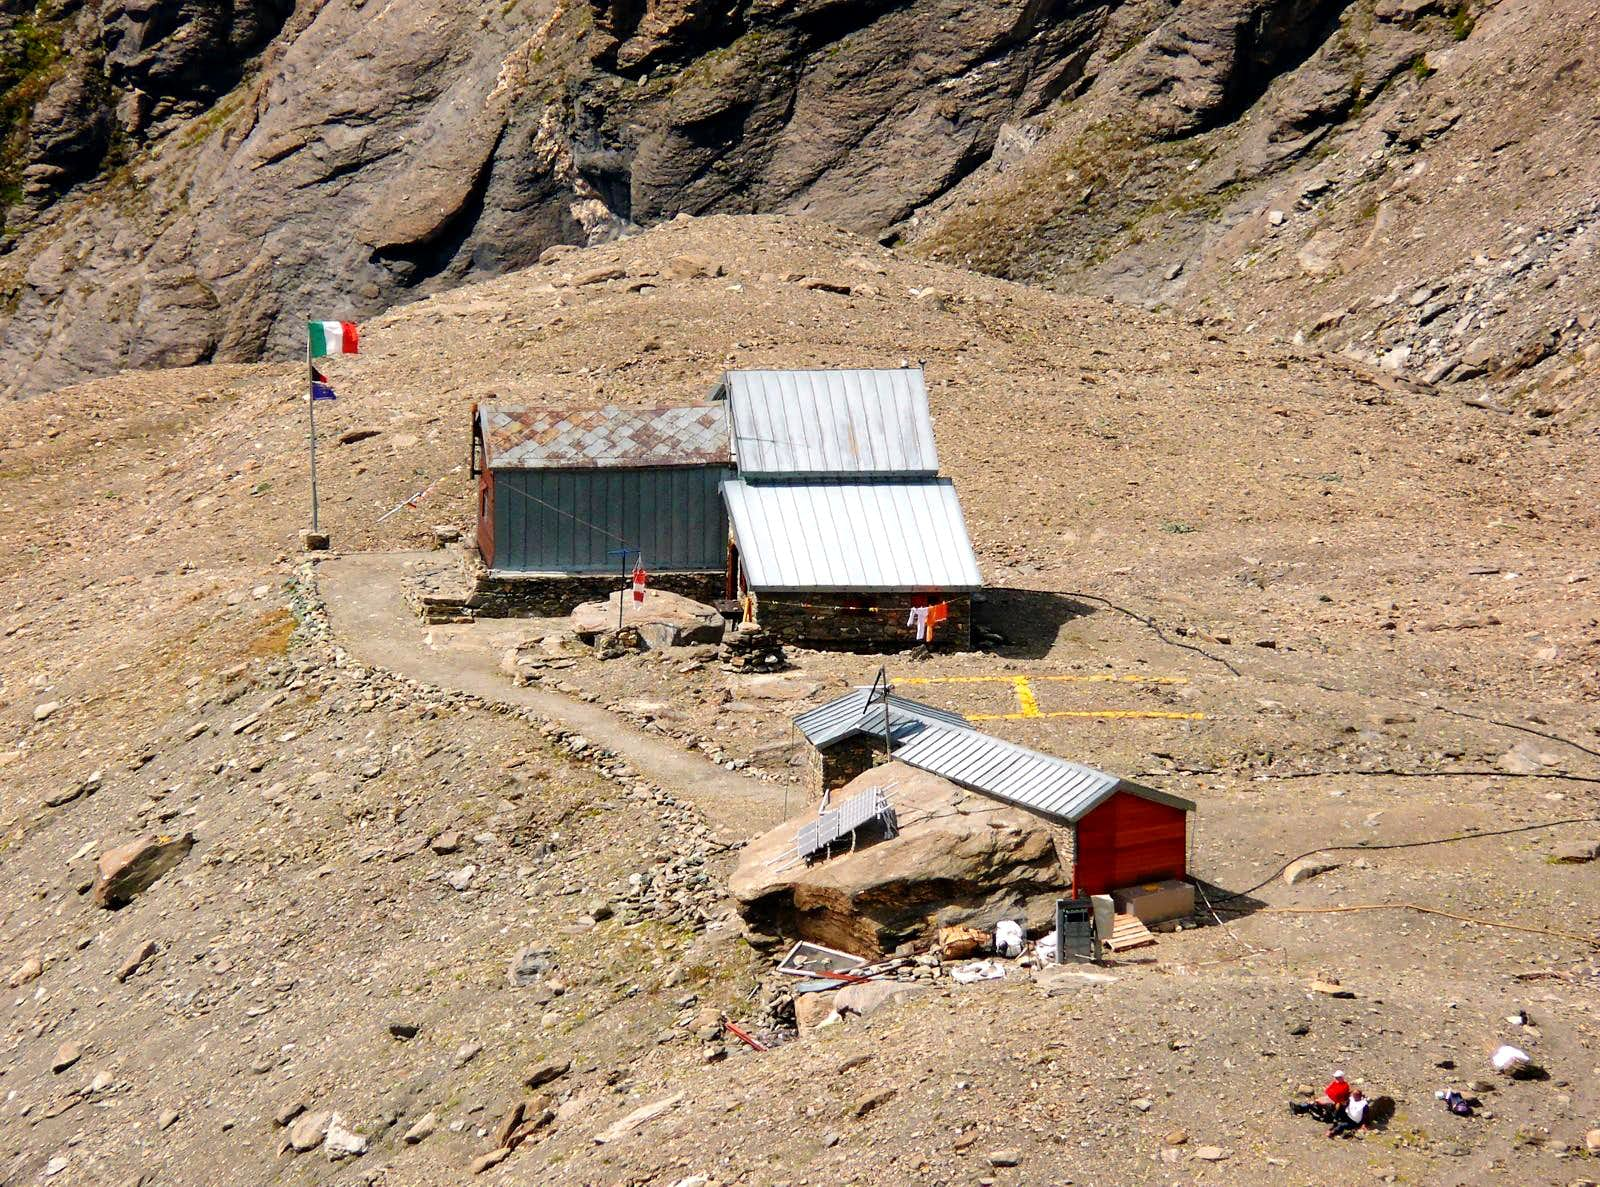 <font color=ff7000>⌂</font>Alpine REFUGES in the Aosta Valley &quot;Valpelline and Gran San Bernardo Valley&quot;